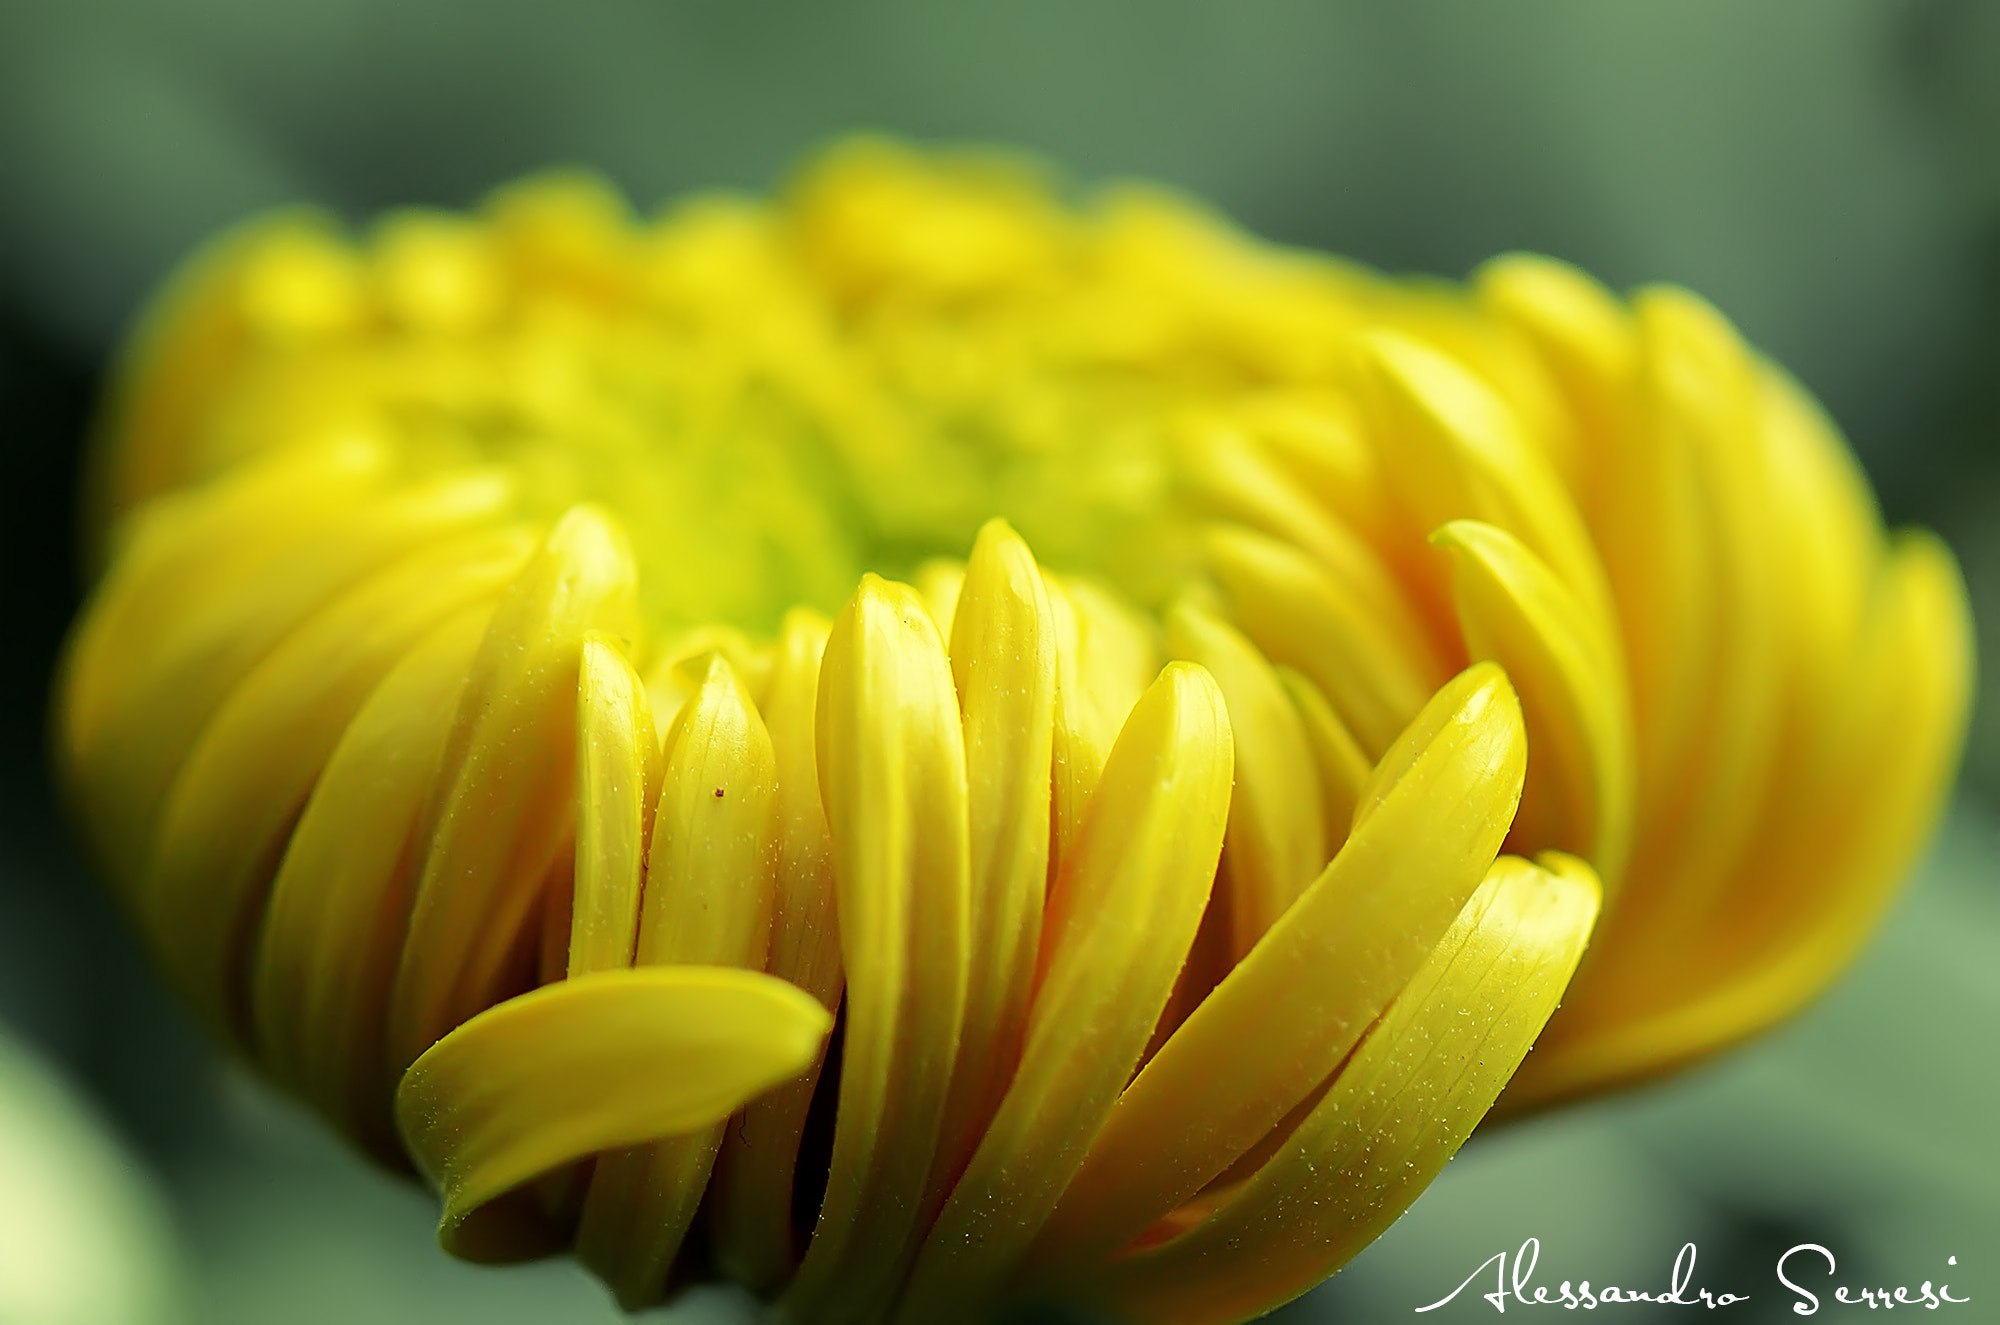 Photograph FLOWER by Alessandro Serresi on 500px